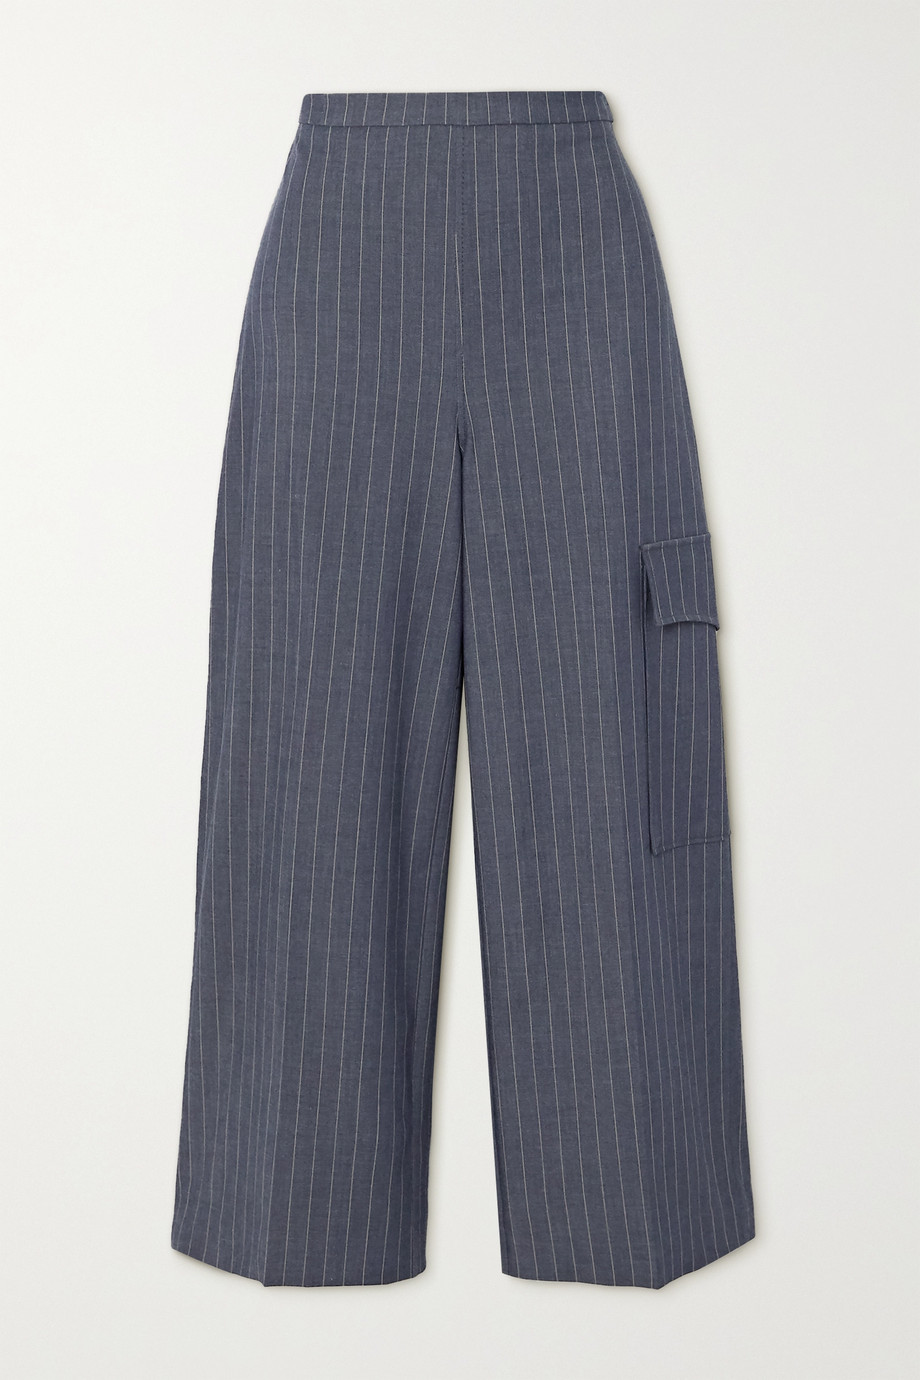 GANNI Pinstriped twill wide-leg pants